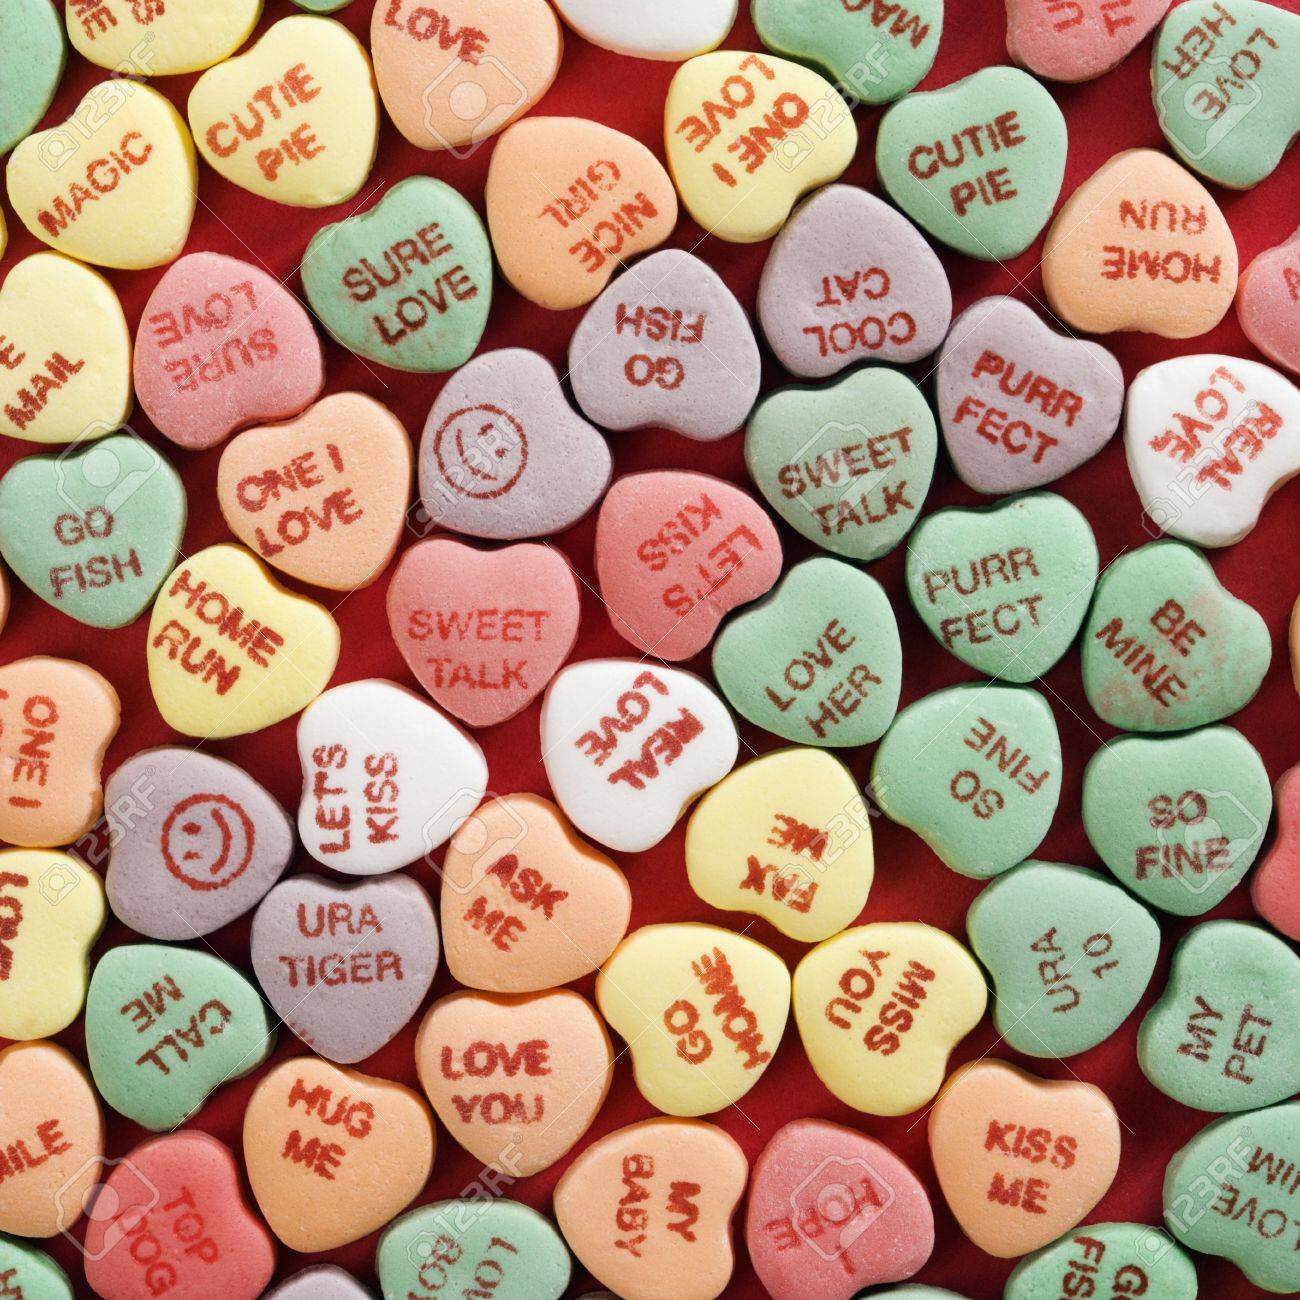 Large group of colorful candy hearts with sayings on them arranged on red background. Stock Photo - 2190098